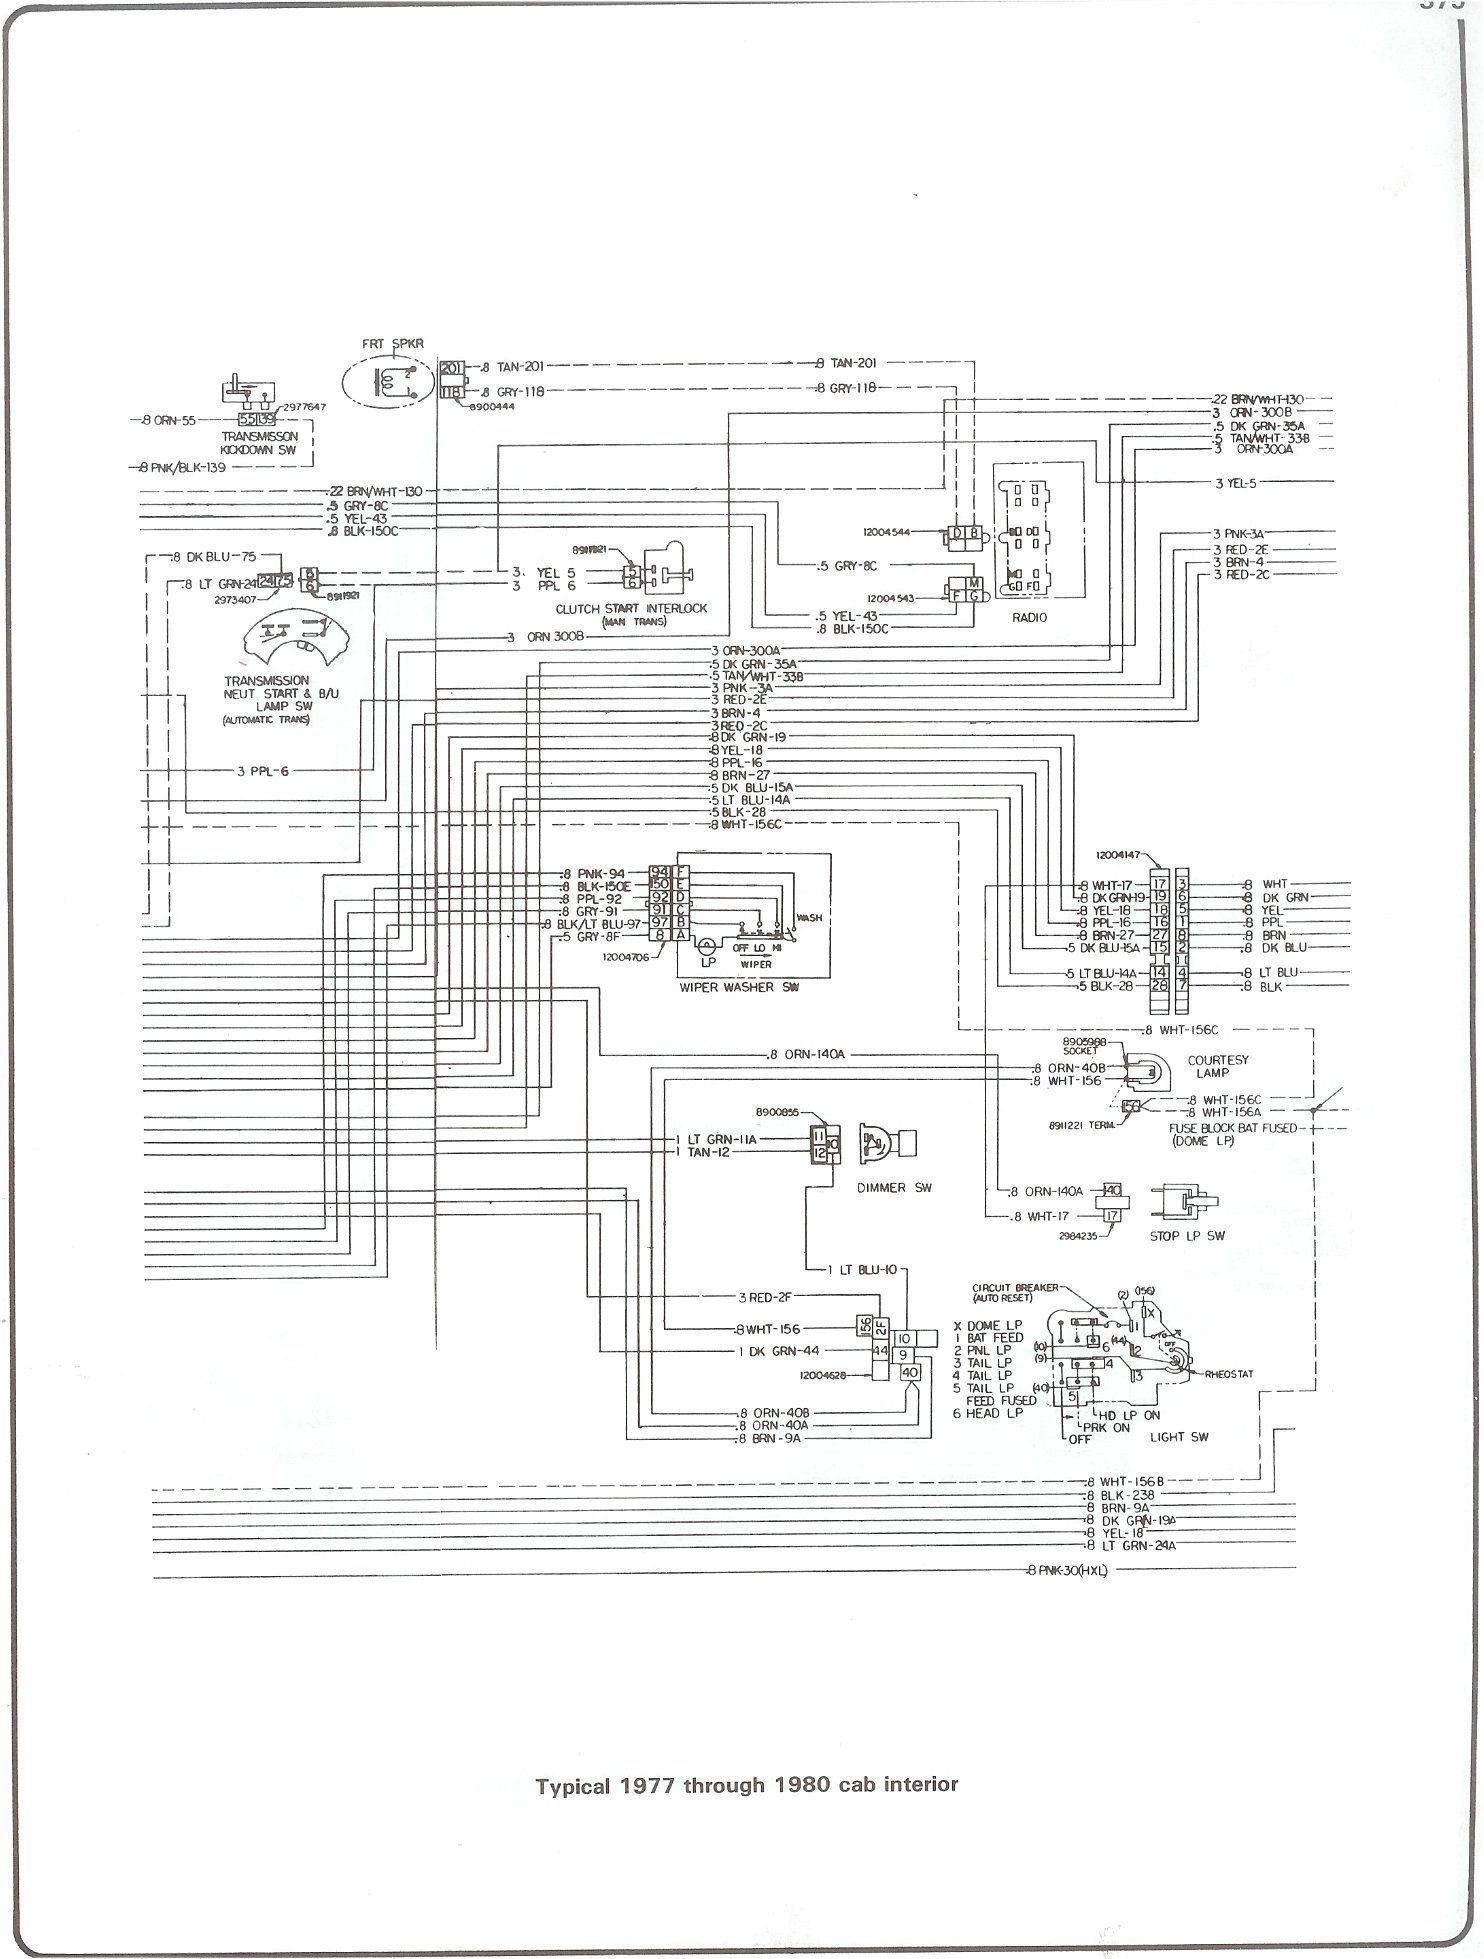 1986 Gmc Ignition Wiring Detailed Schematics Diagram Complete 73 87 Diagrams Corvair